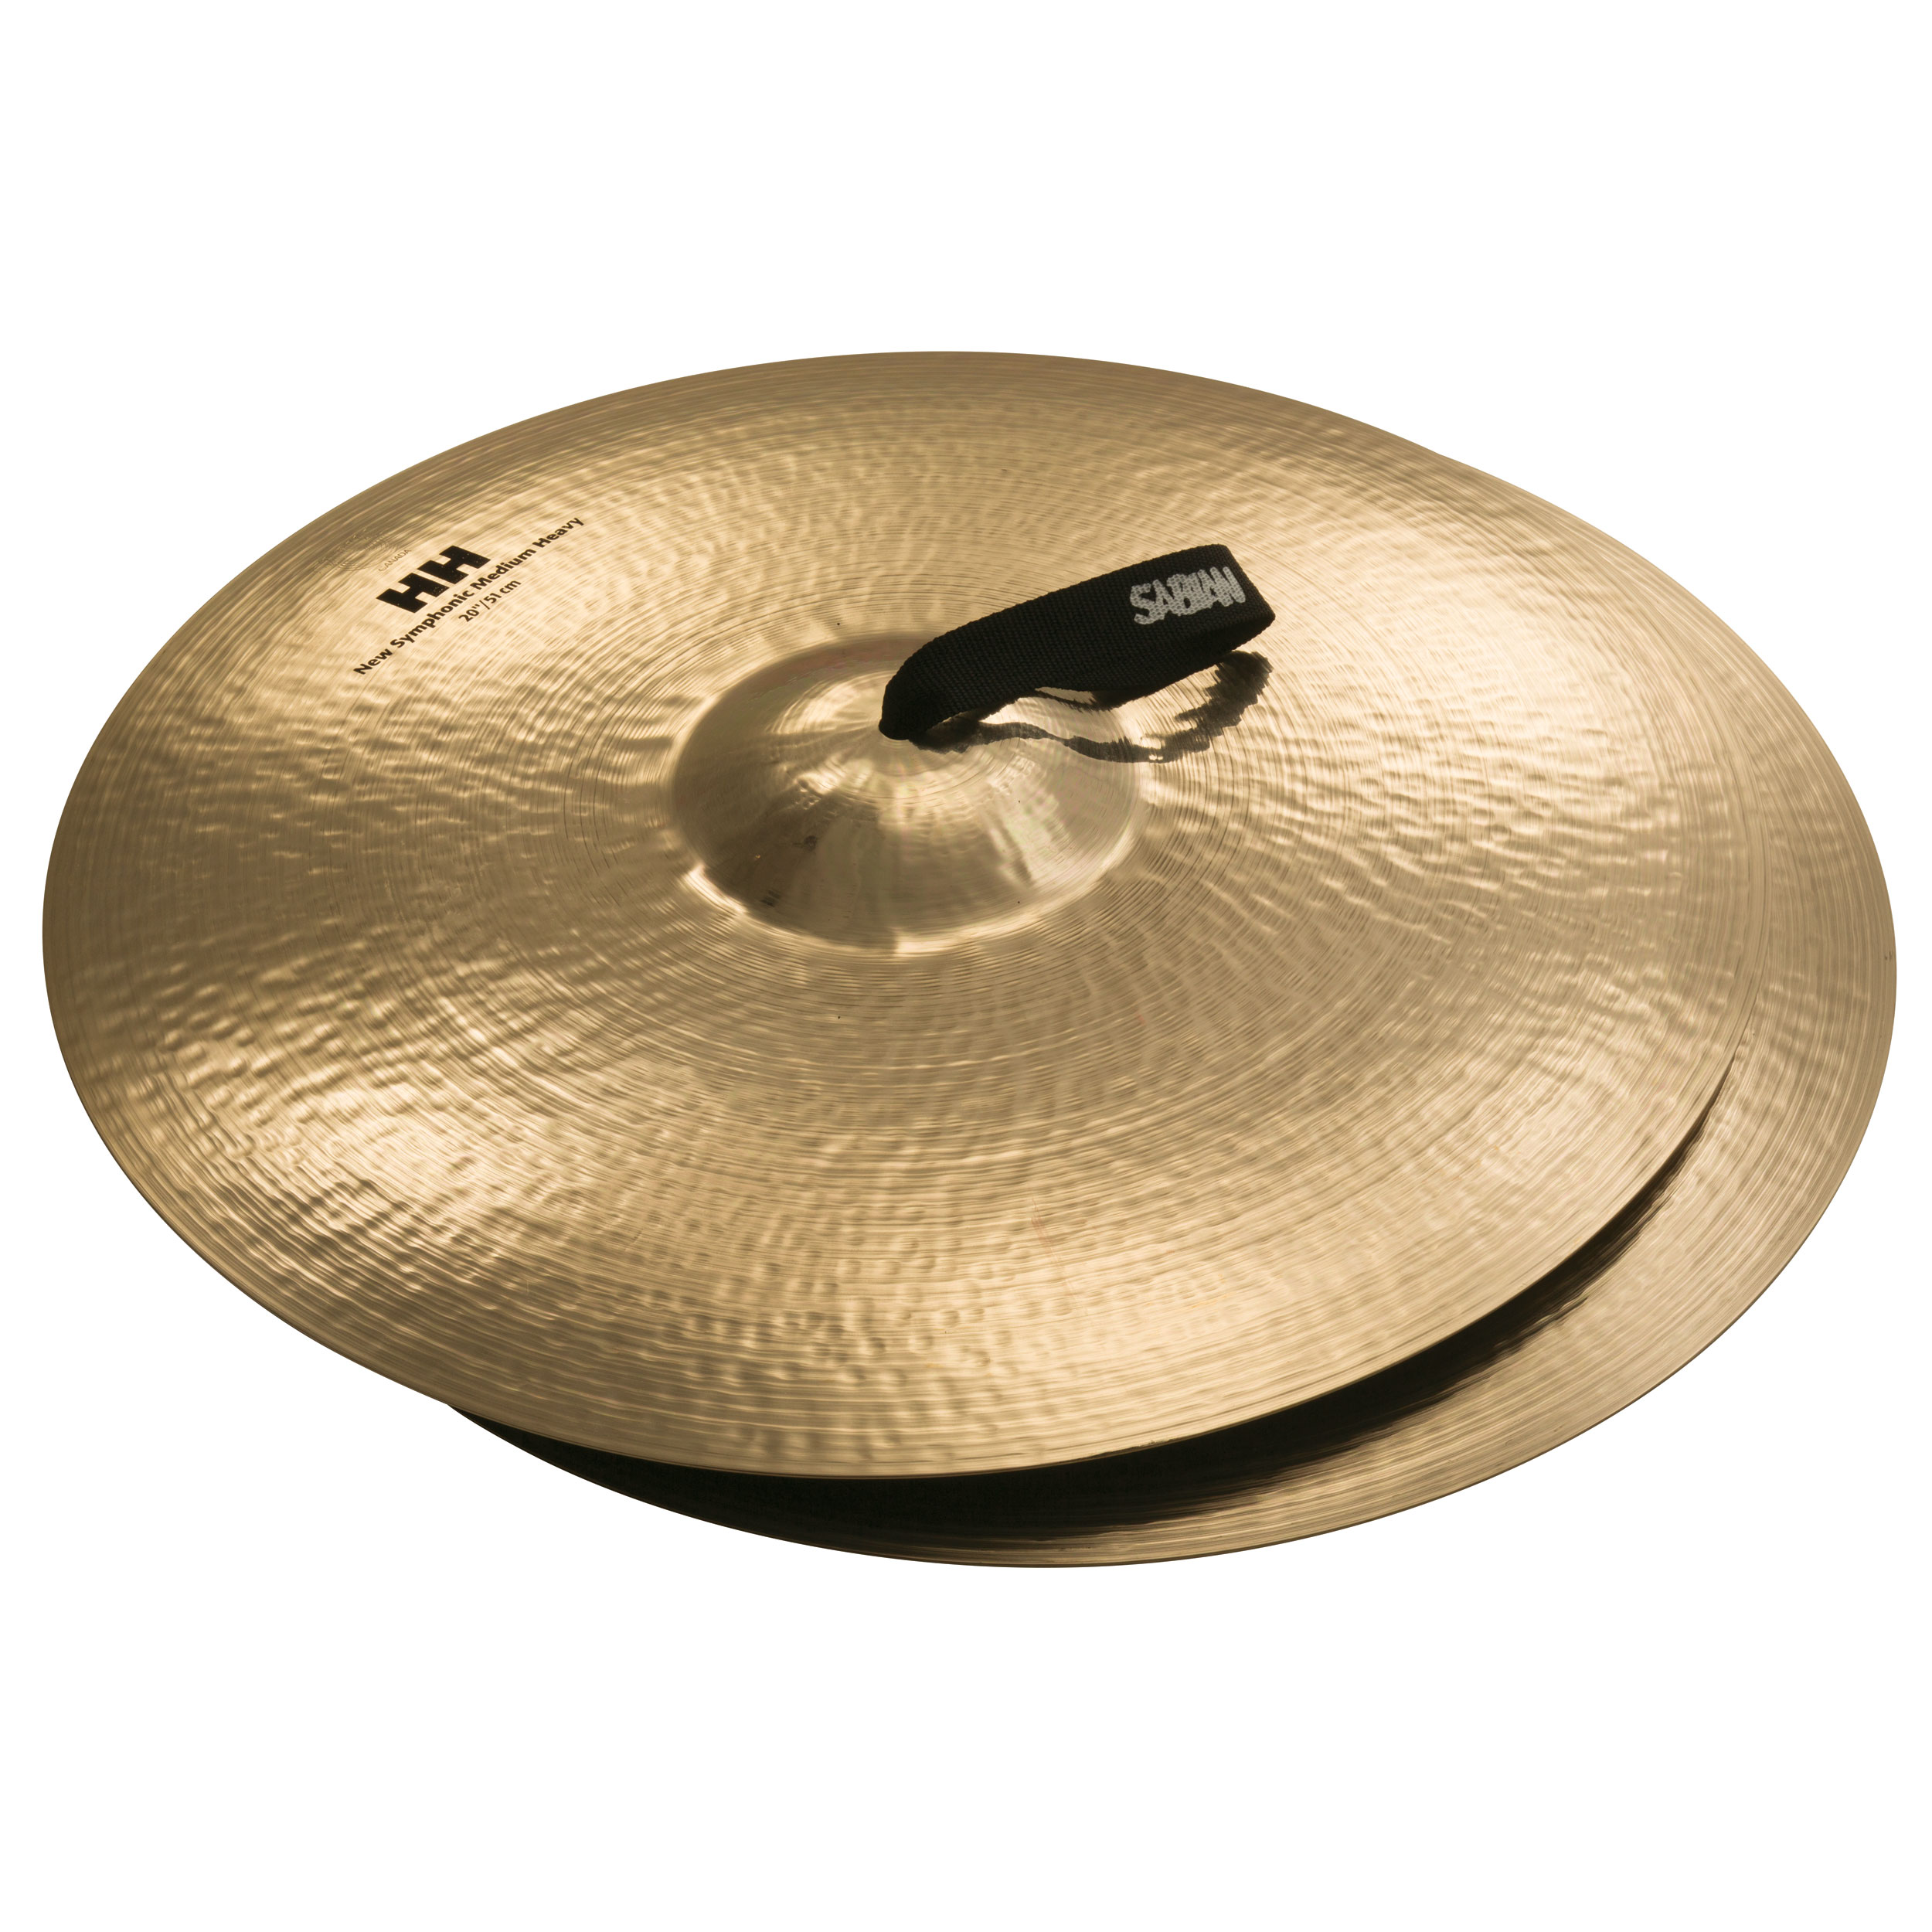 "Sabian 20"" HH Symphonic Medium-Heavy Crash Cymbal Pair"